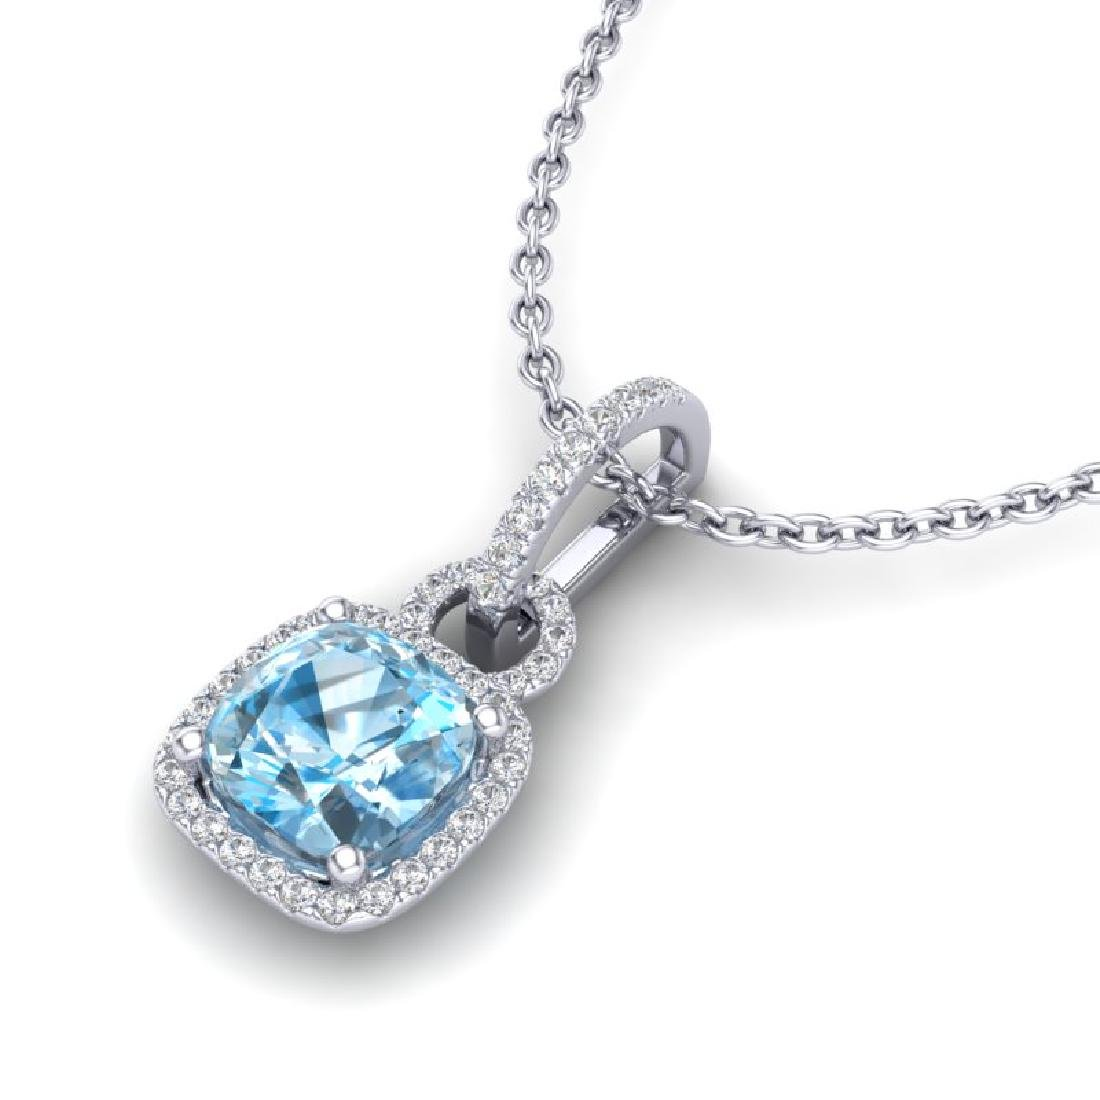 3.50 CTW Topaz & Micro VS/SI Diamond Necklace 18K White